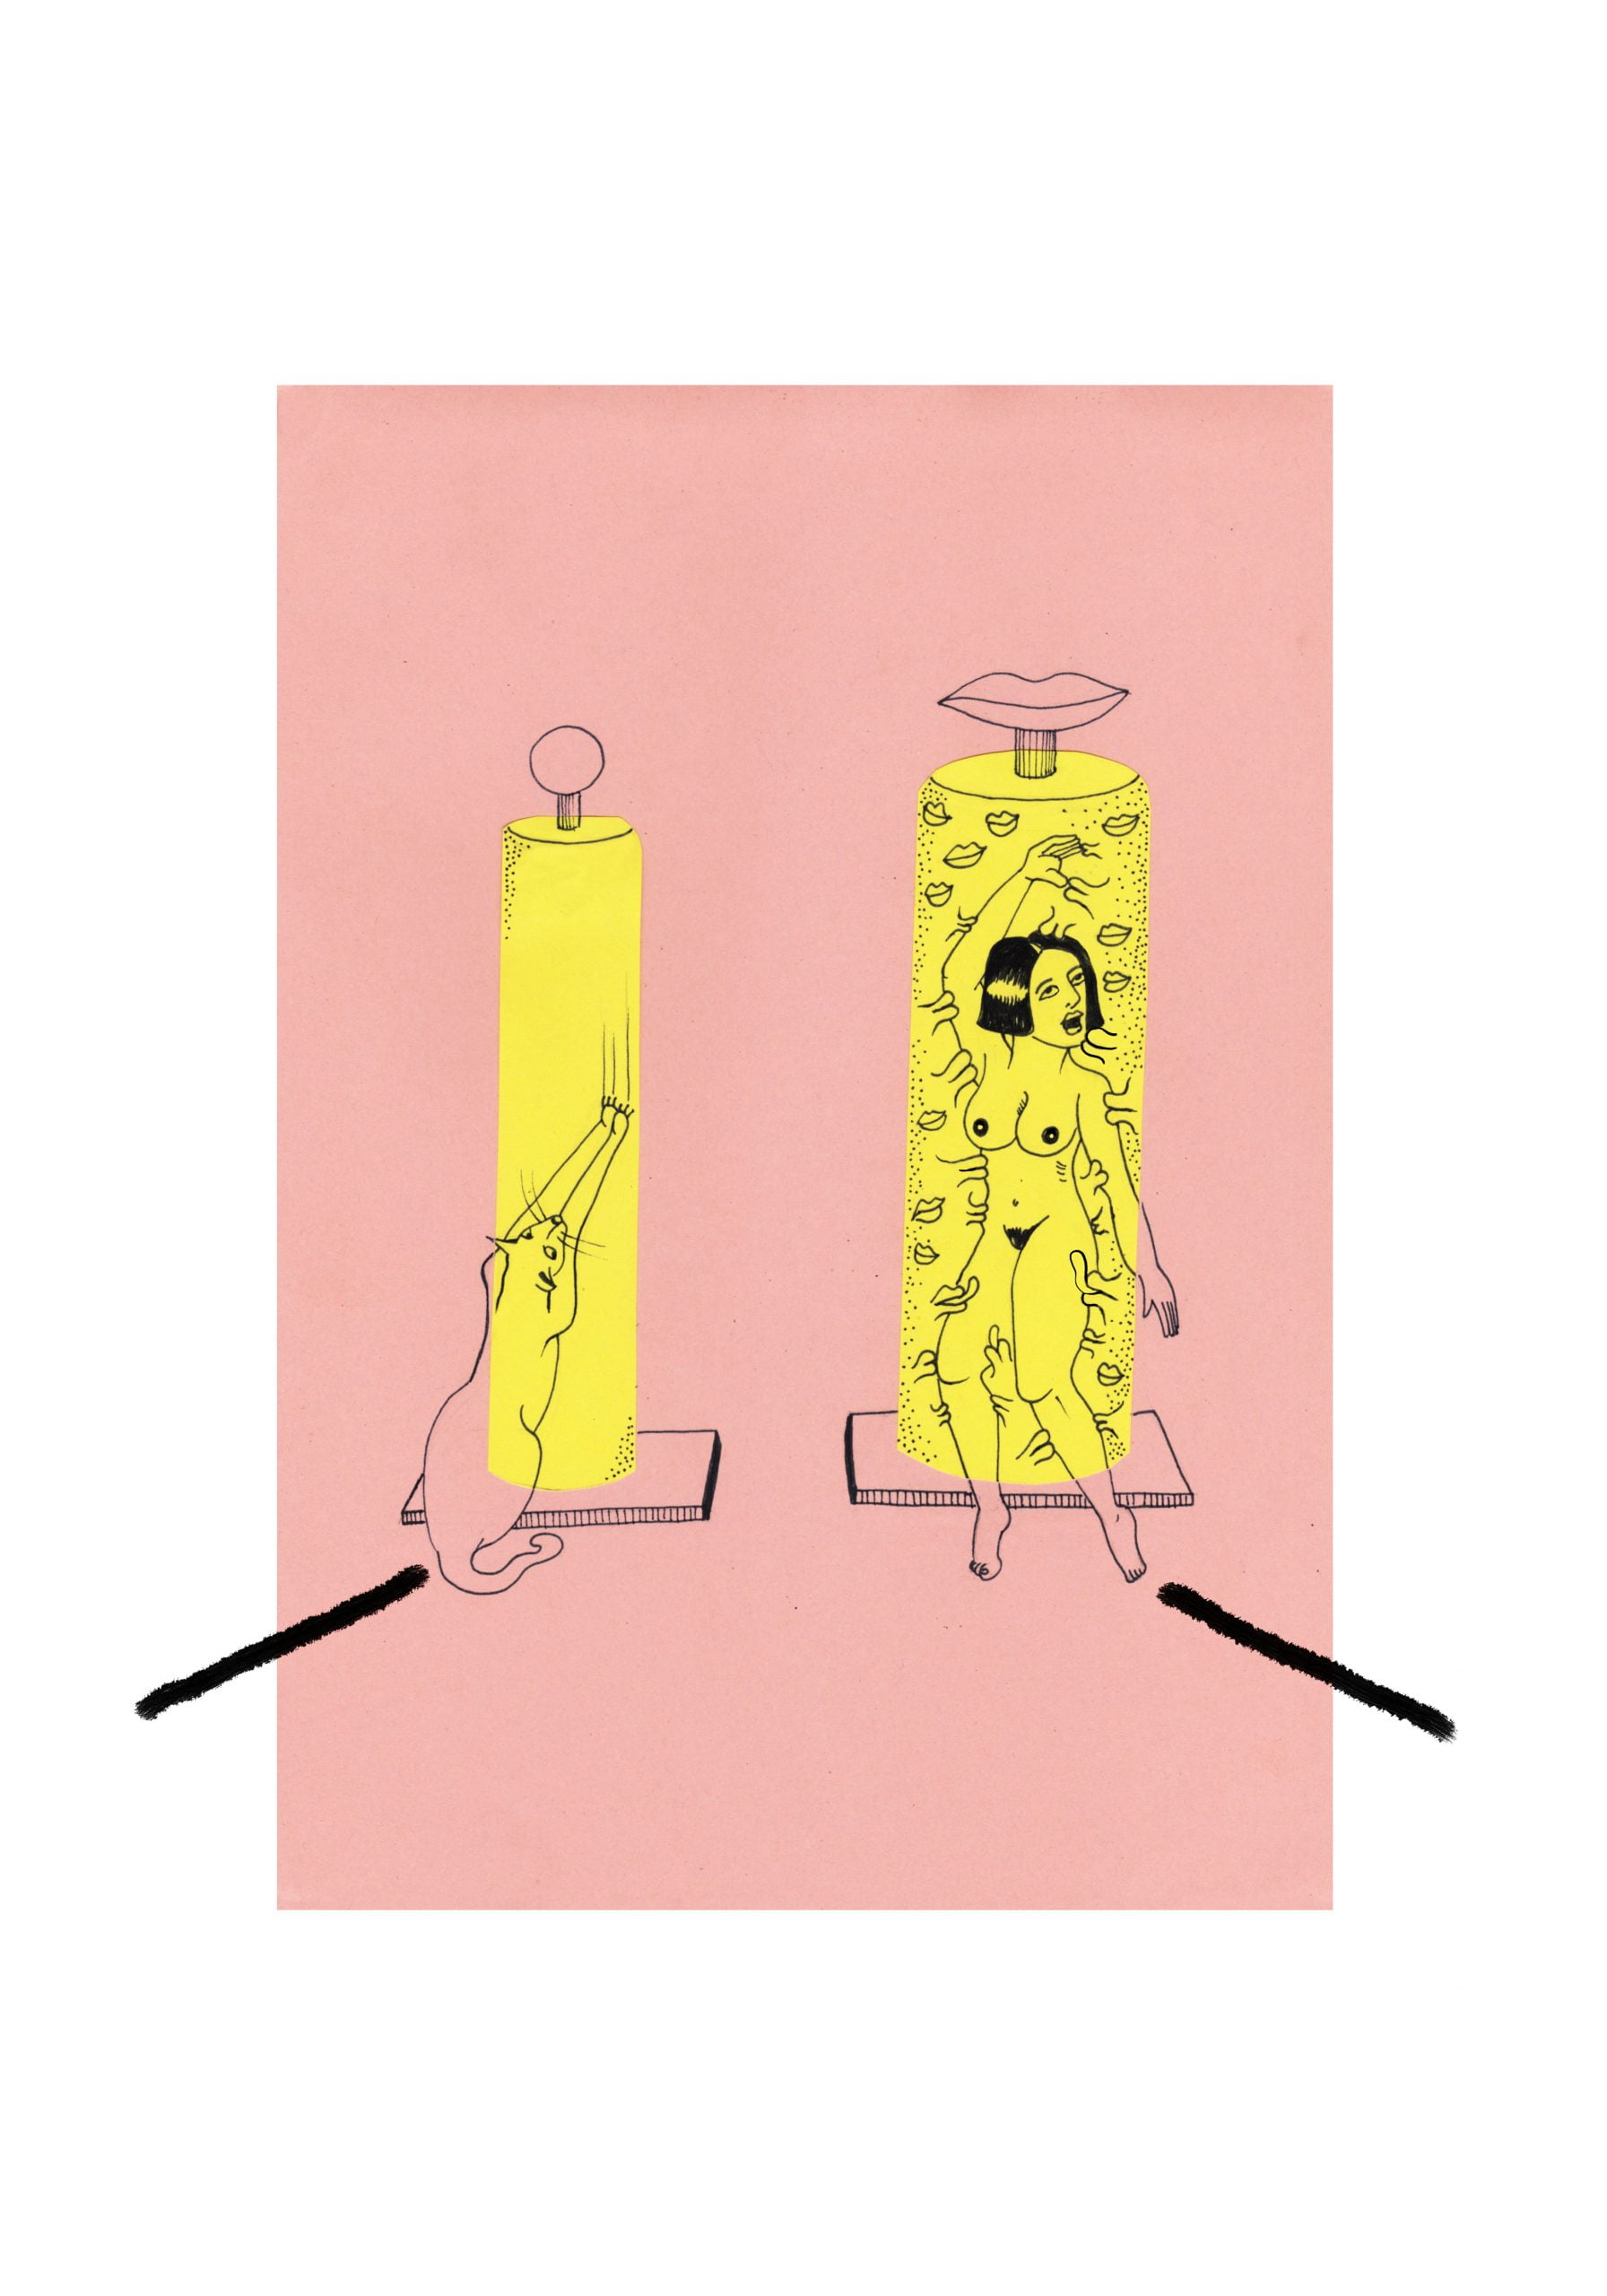 A portrait drawing in a pink rectangle of two small square platforms with a bright yellow cylinder of light. In the left is a cat reaching out to scratch the light. In the right stands a female figure surrounded by many pairs of lips. Two black lines point away from the light sources. A white background frames the drawing.